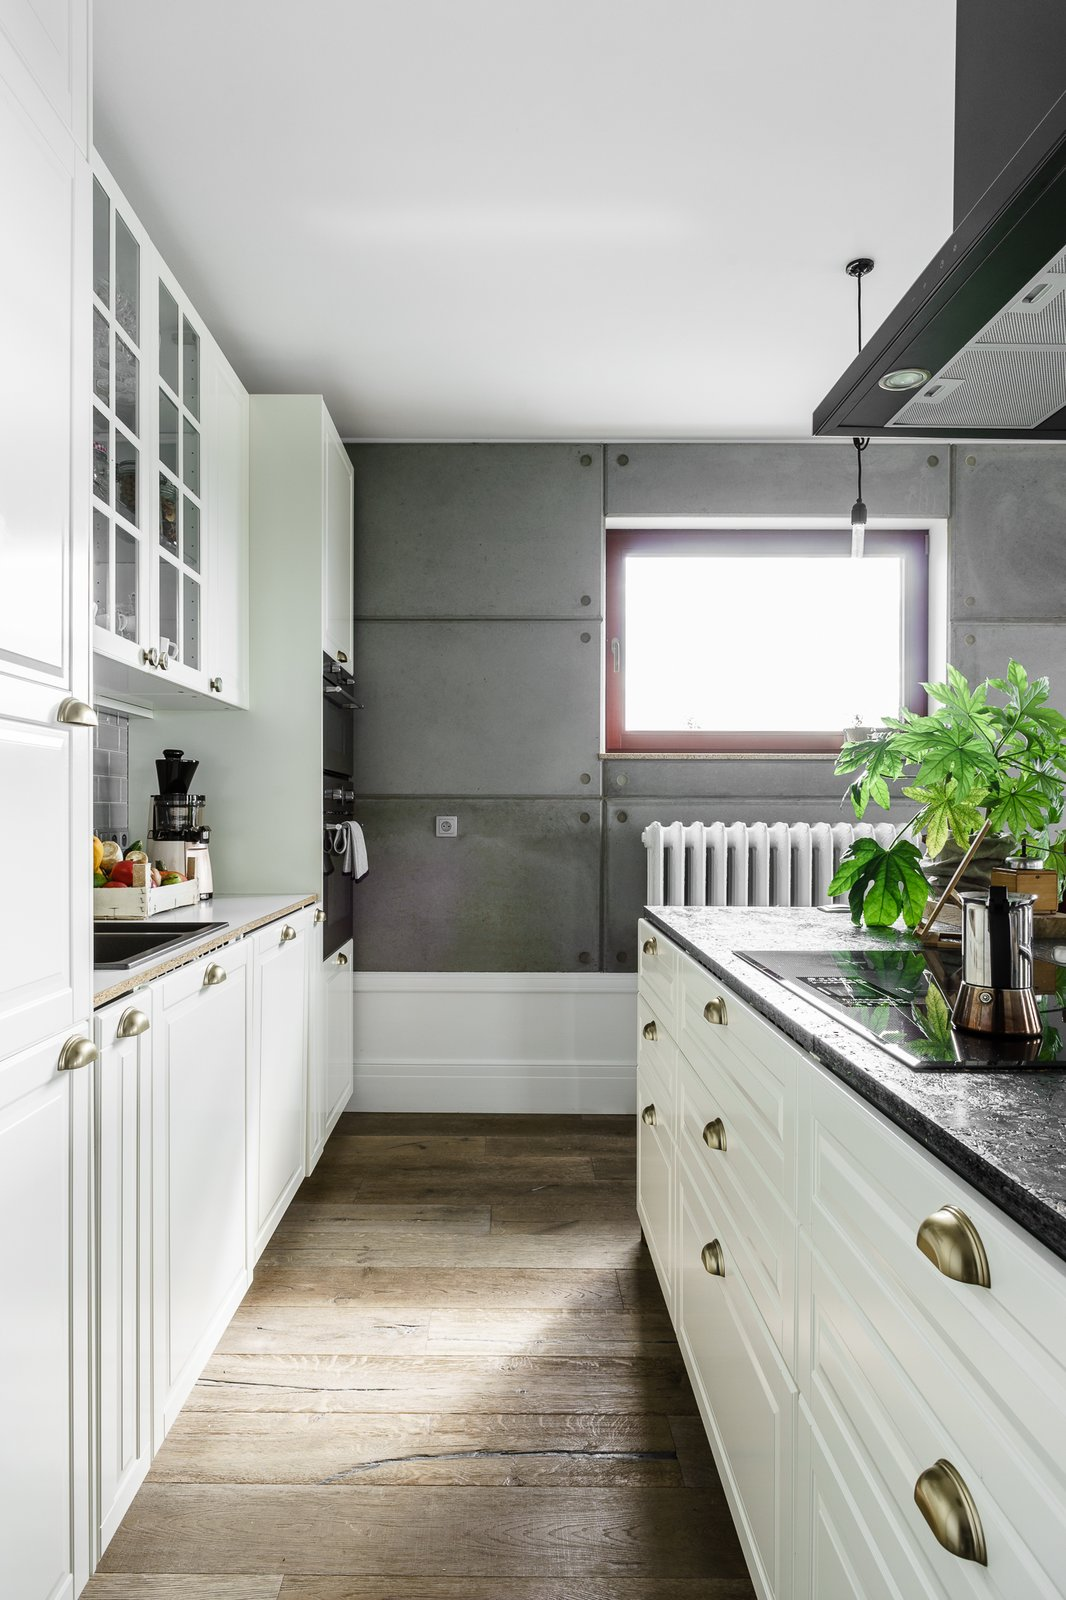 Tagged: Kitchen, Cooktops, White Cabinet, Granite Counter, Medium Hardwood Floor, Range Hood, and Drop In Sink.  Loft in Poland by Lucyna Kołodziejska | INTERIORS FACTORY